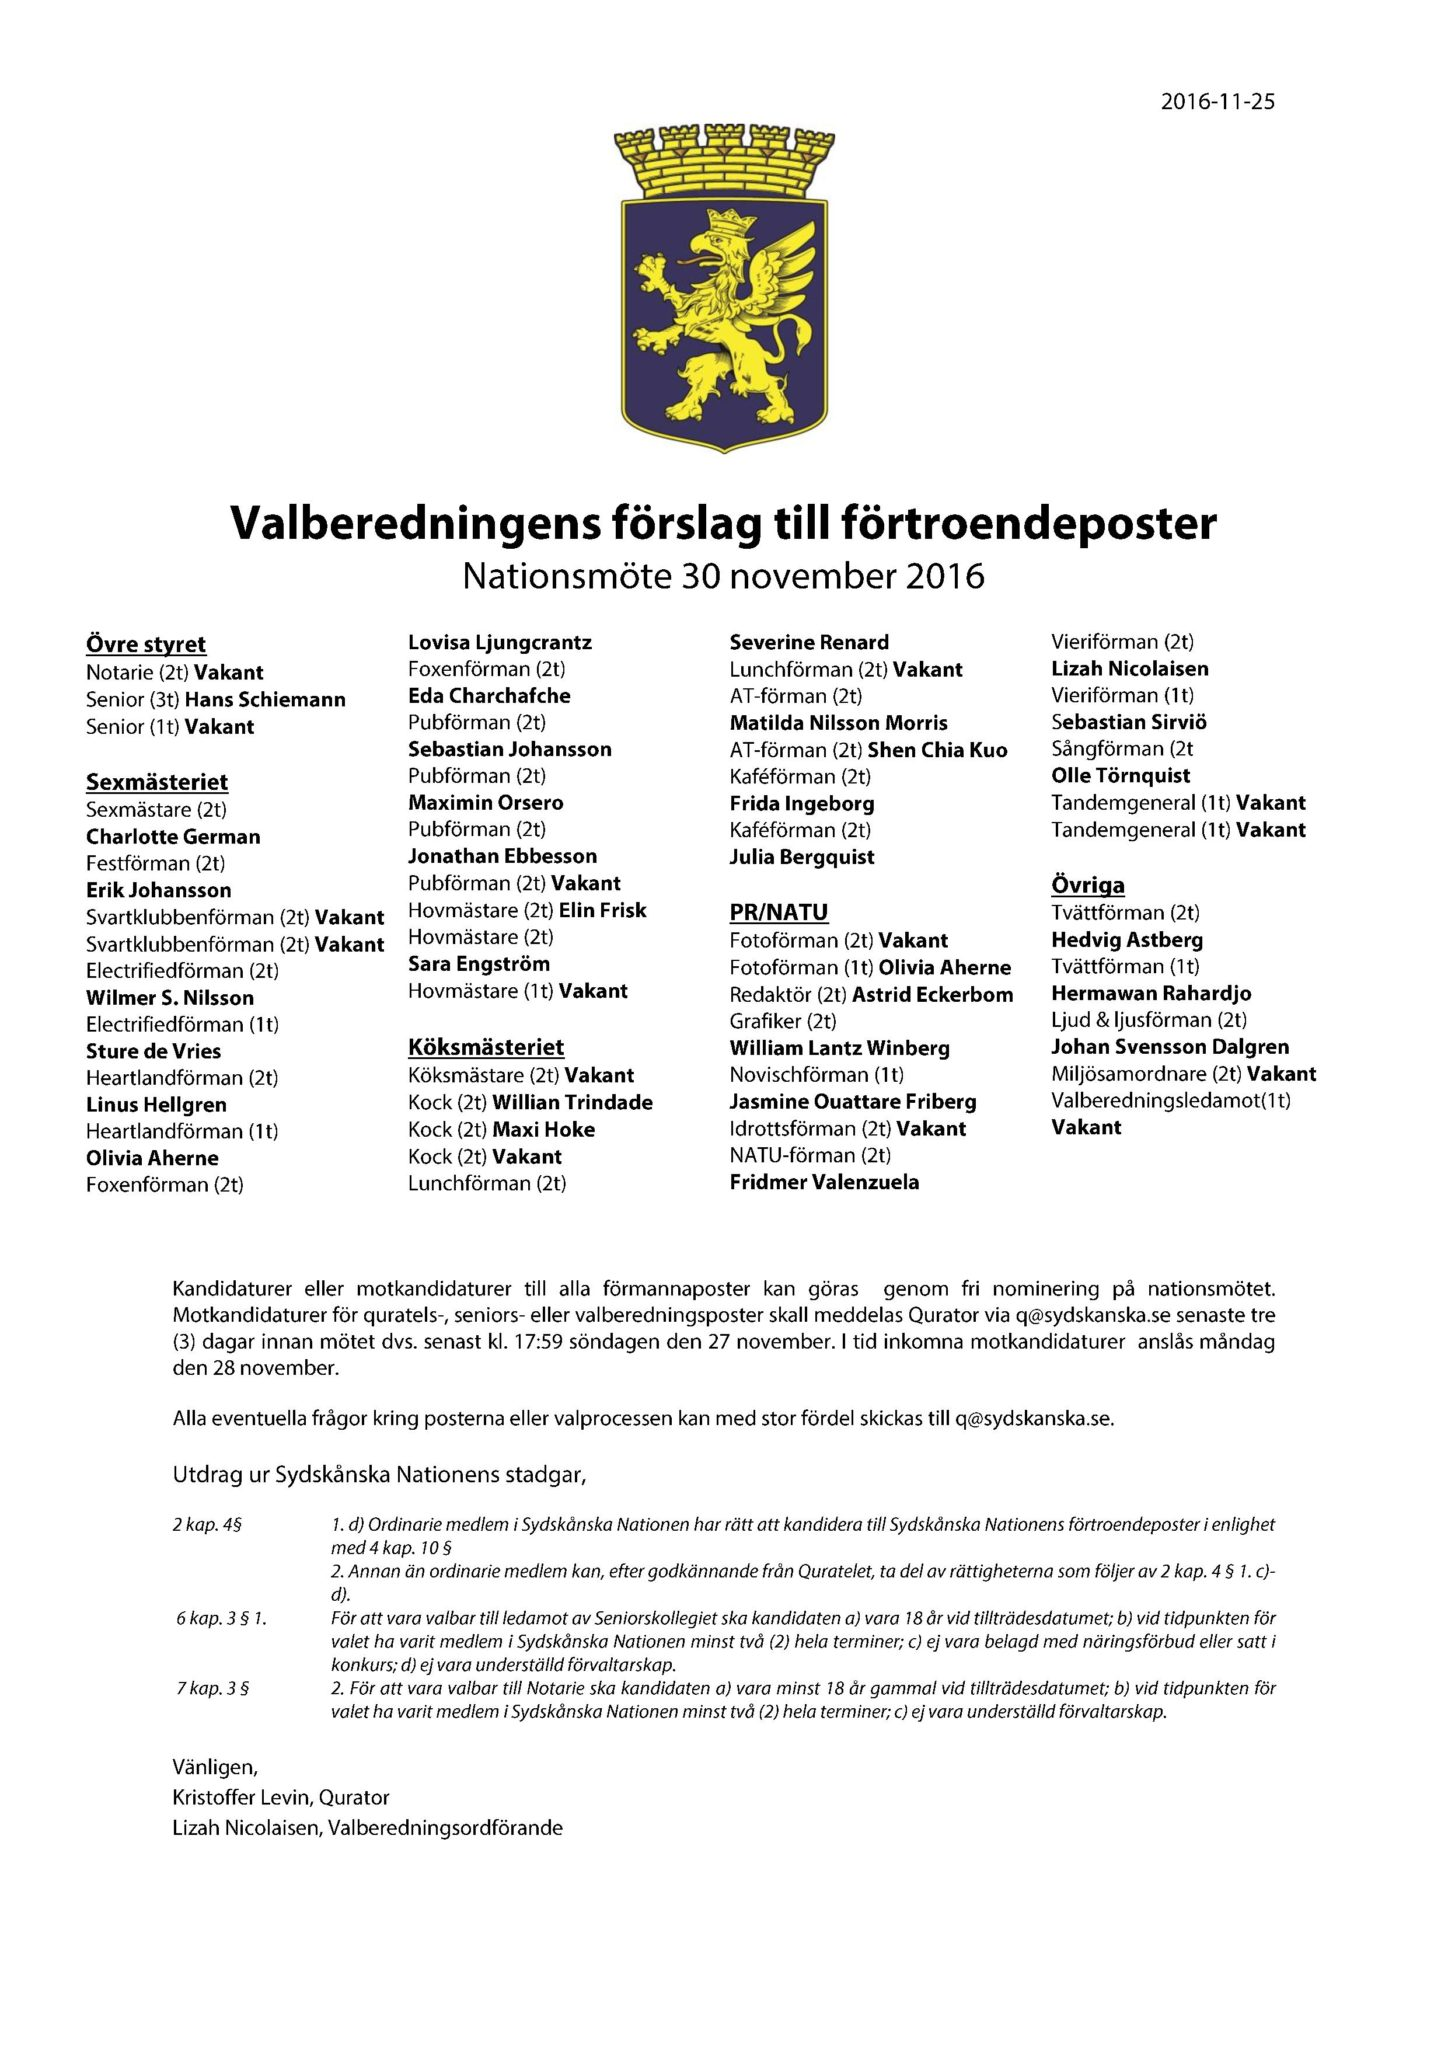 valberedningens-forslag-till-nationsmote-2016-11-30